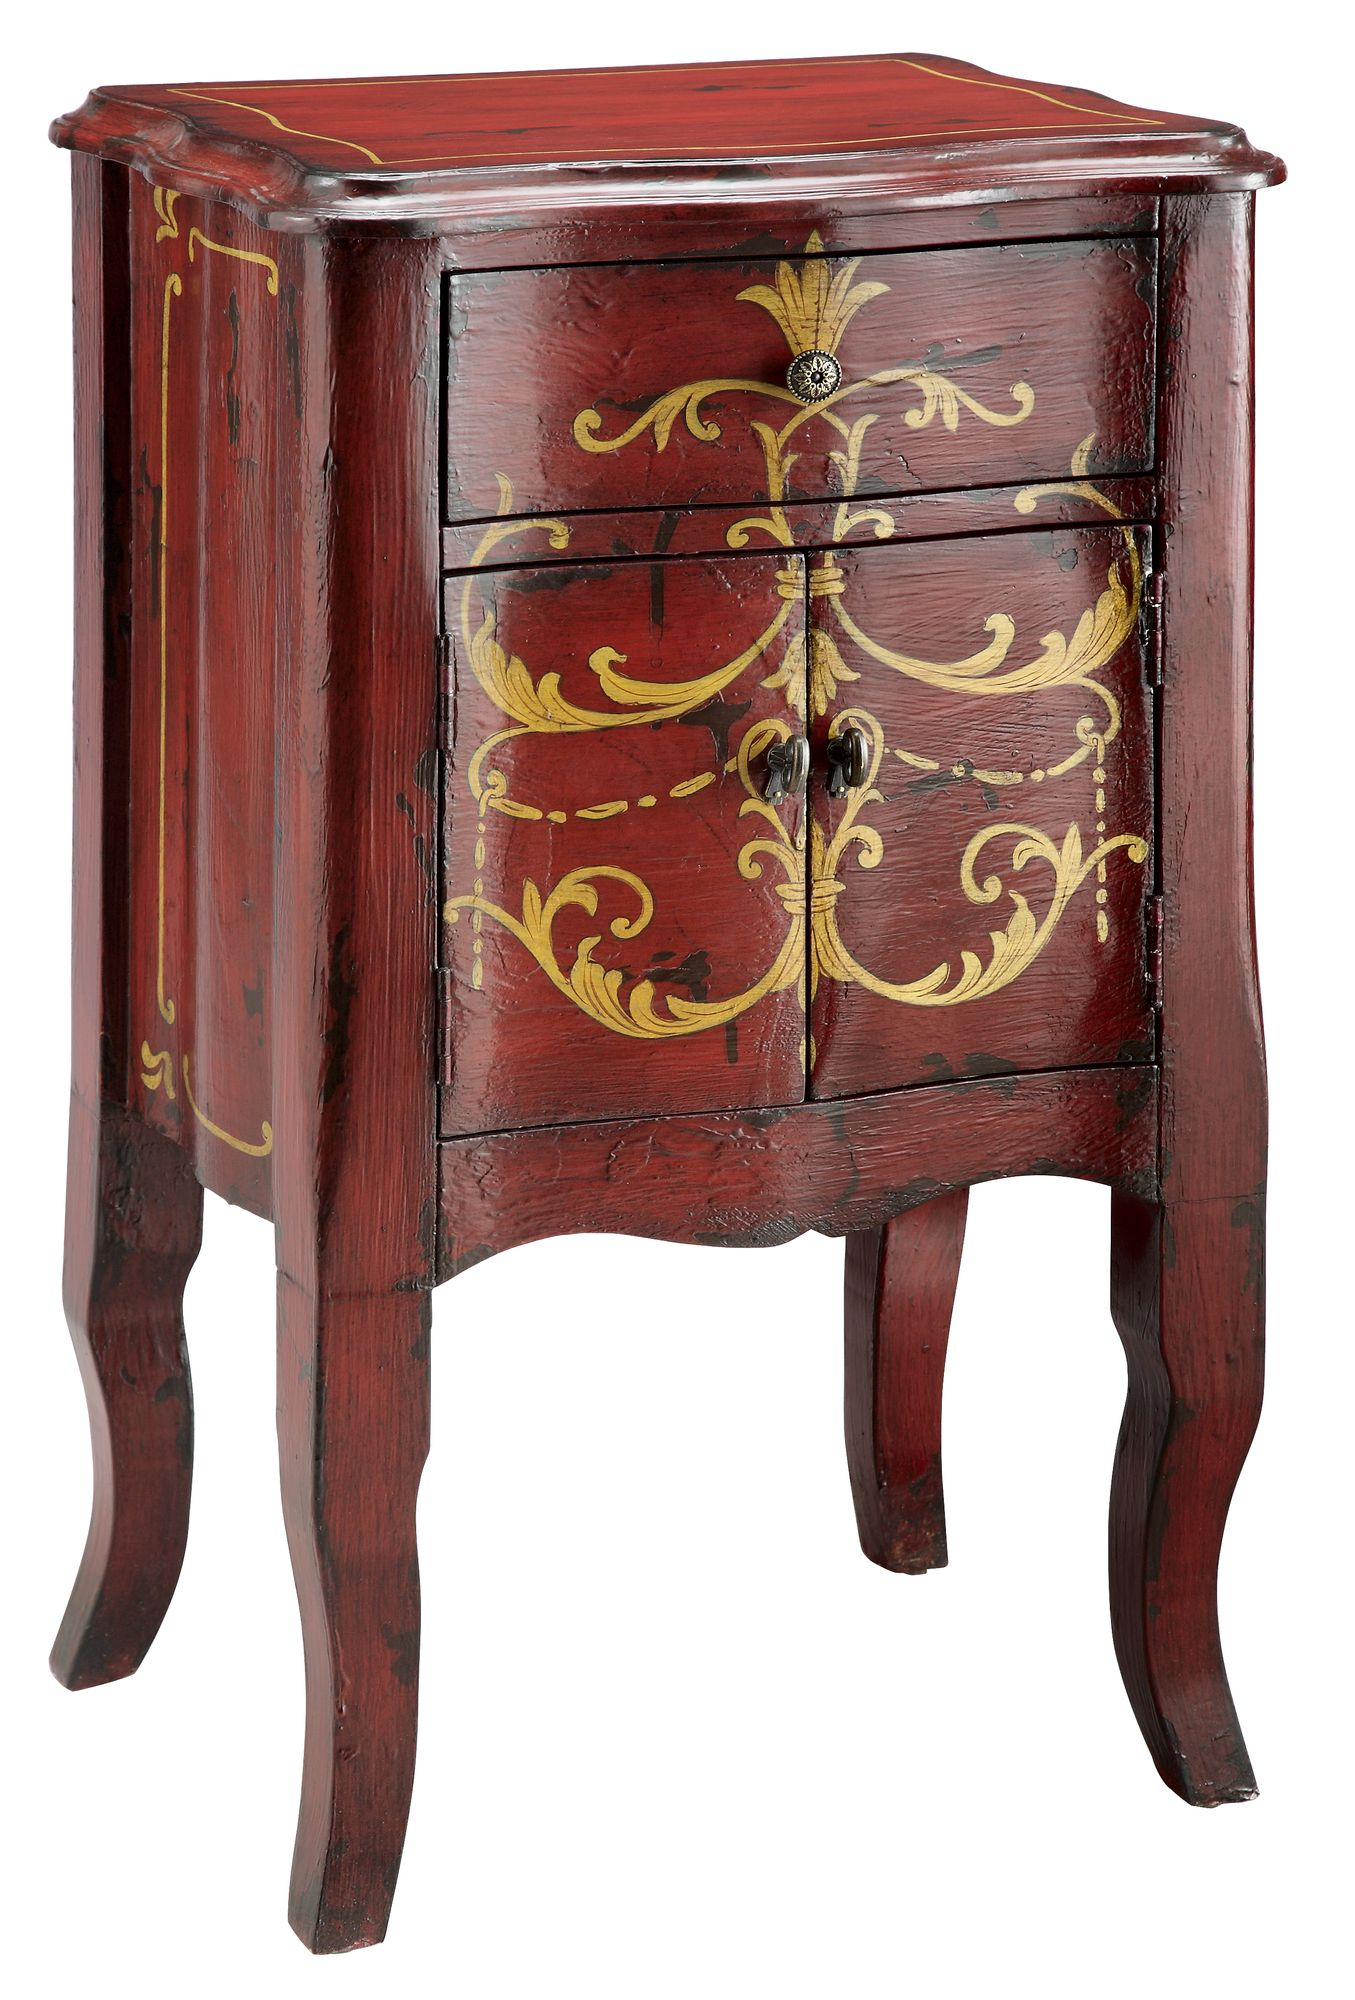 Stein World Painted Treasures Pee Chairside Chest French Cottage Furniture Furnitures